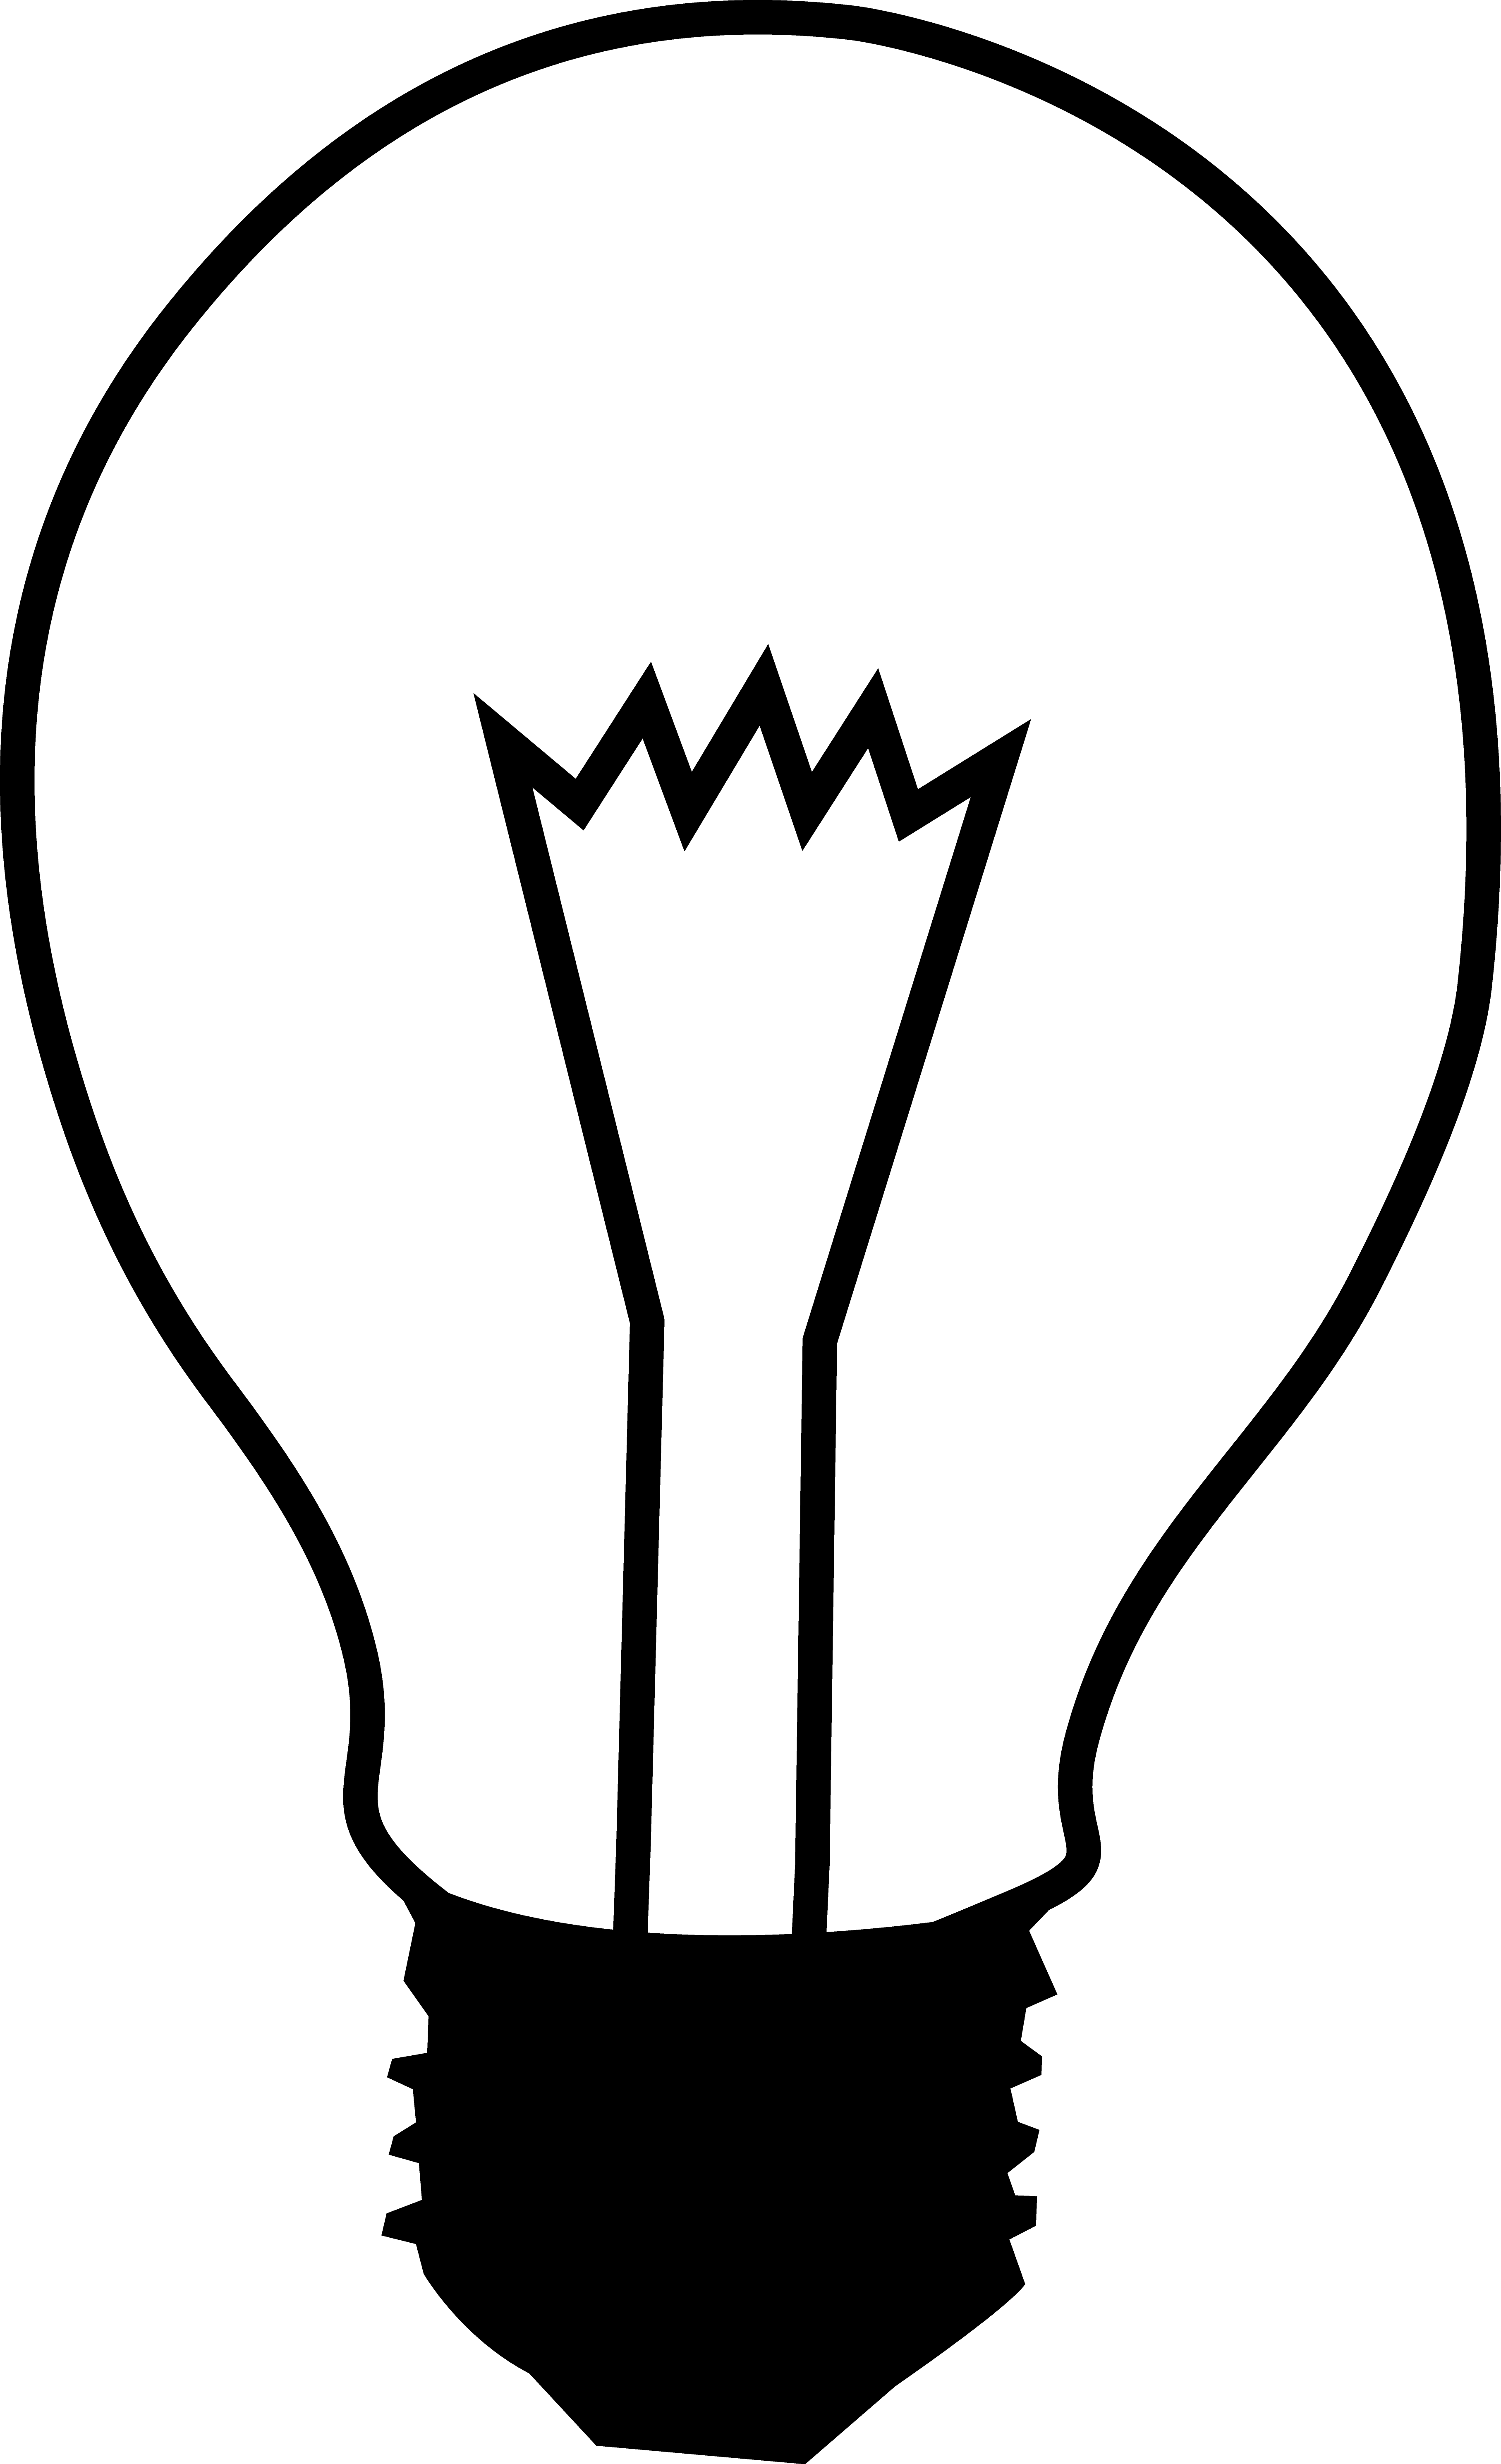 Electric clipart electrical panel. Light bulb clip art